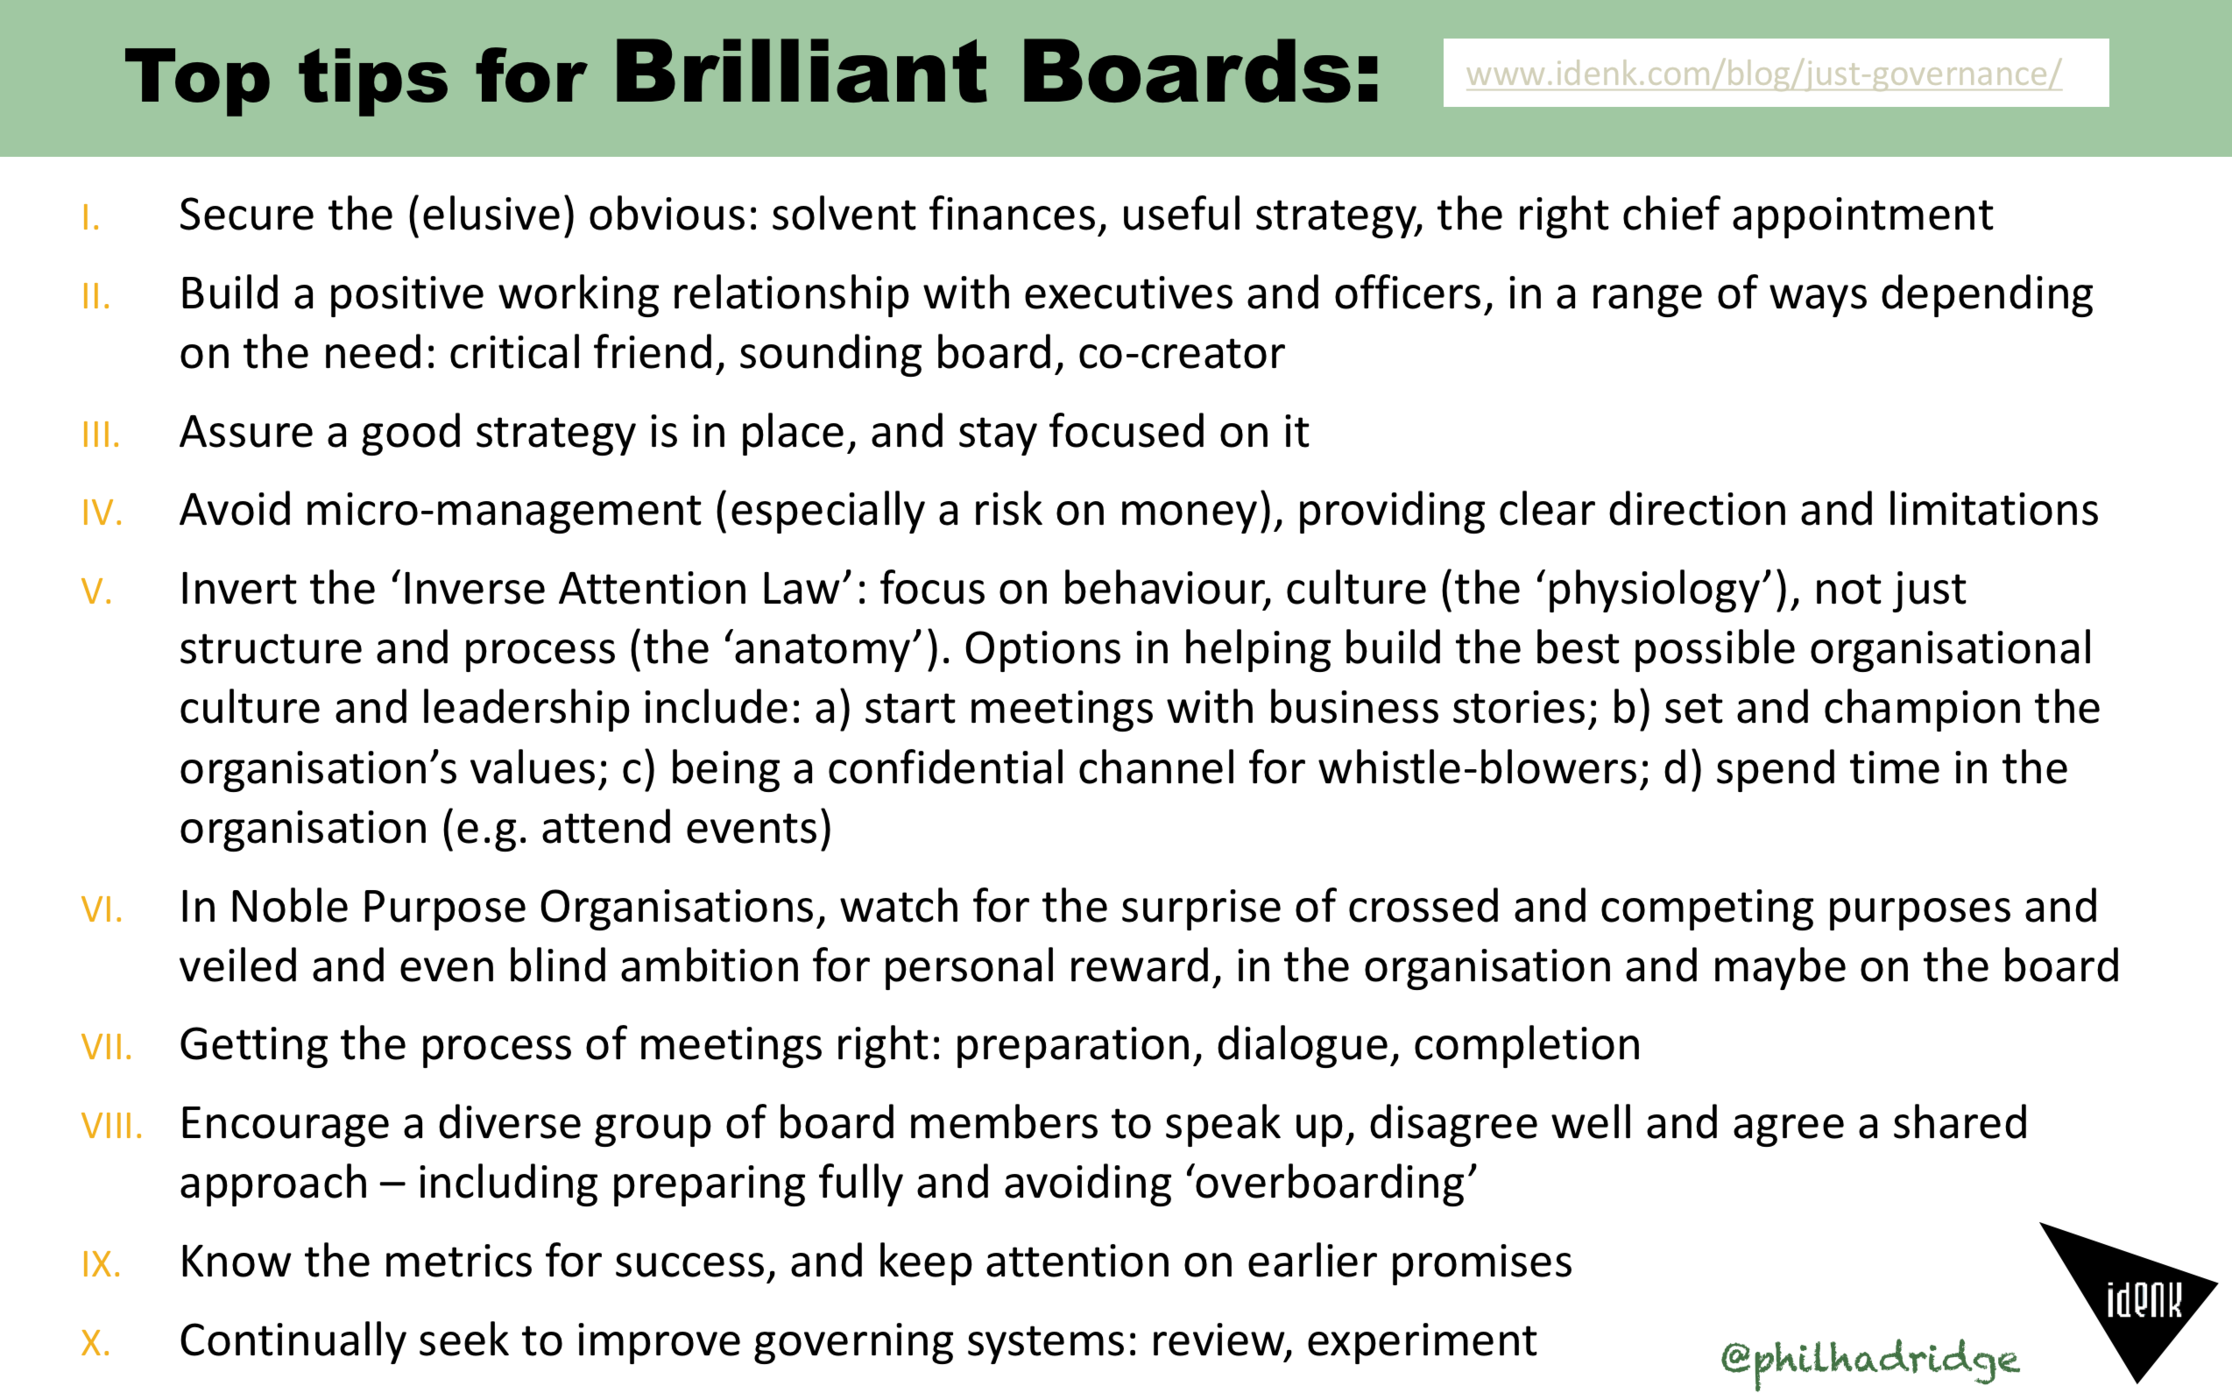 Top tips for brilliant boards